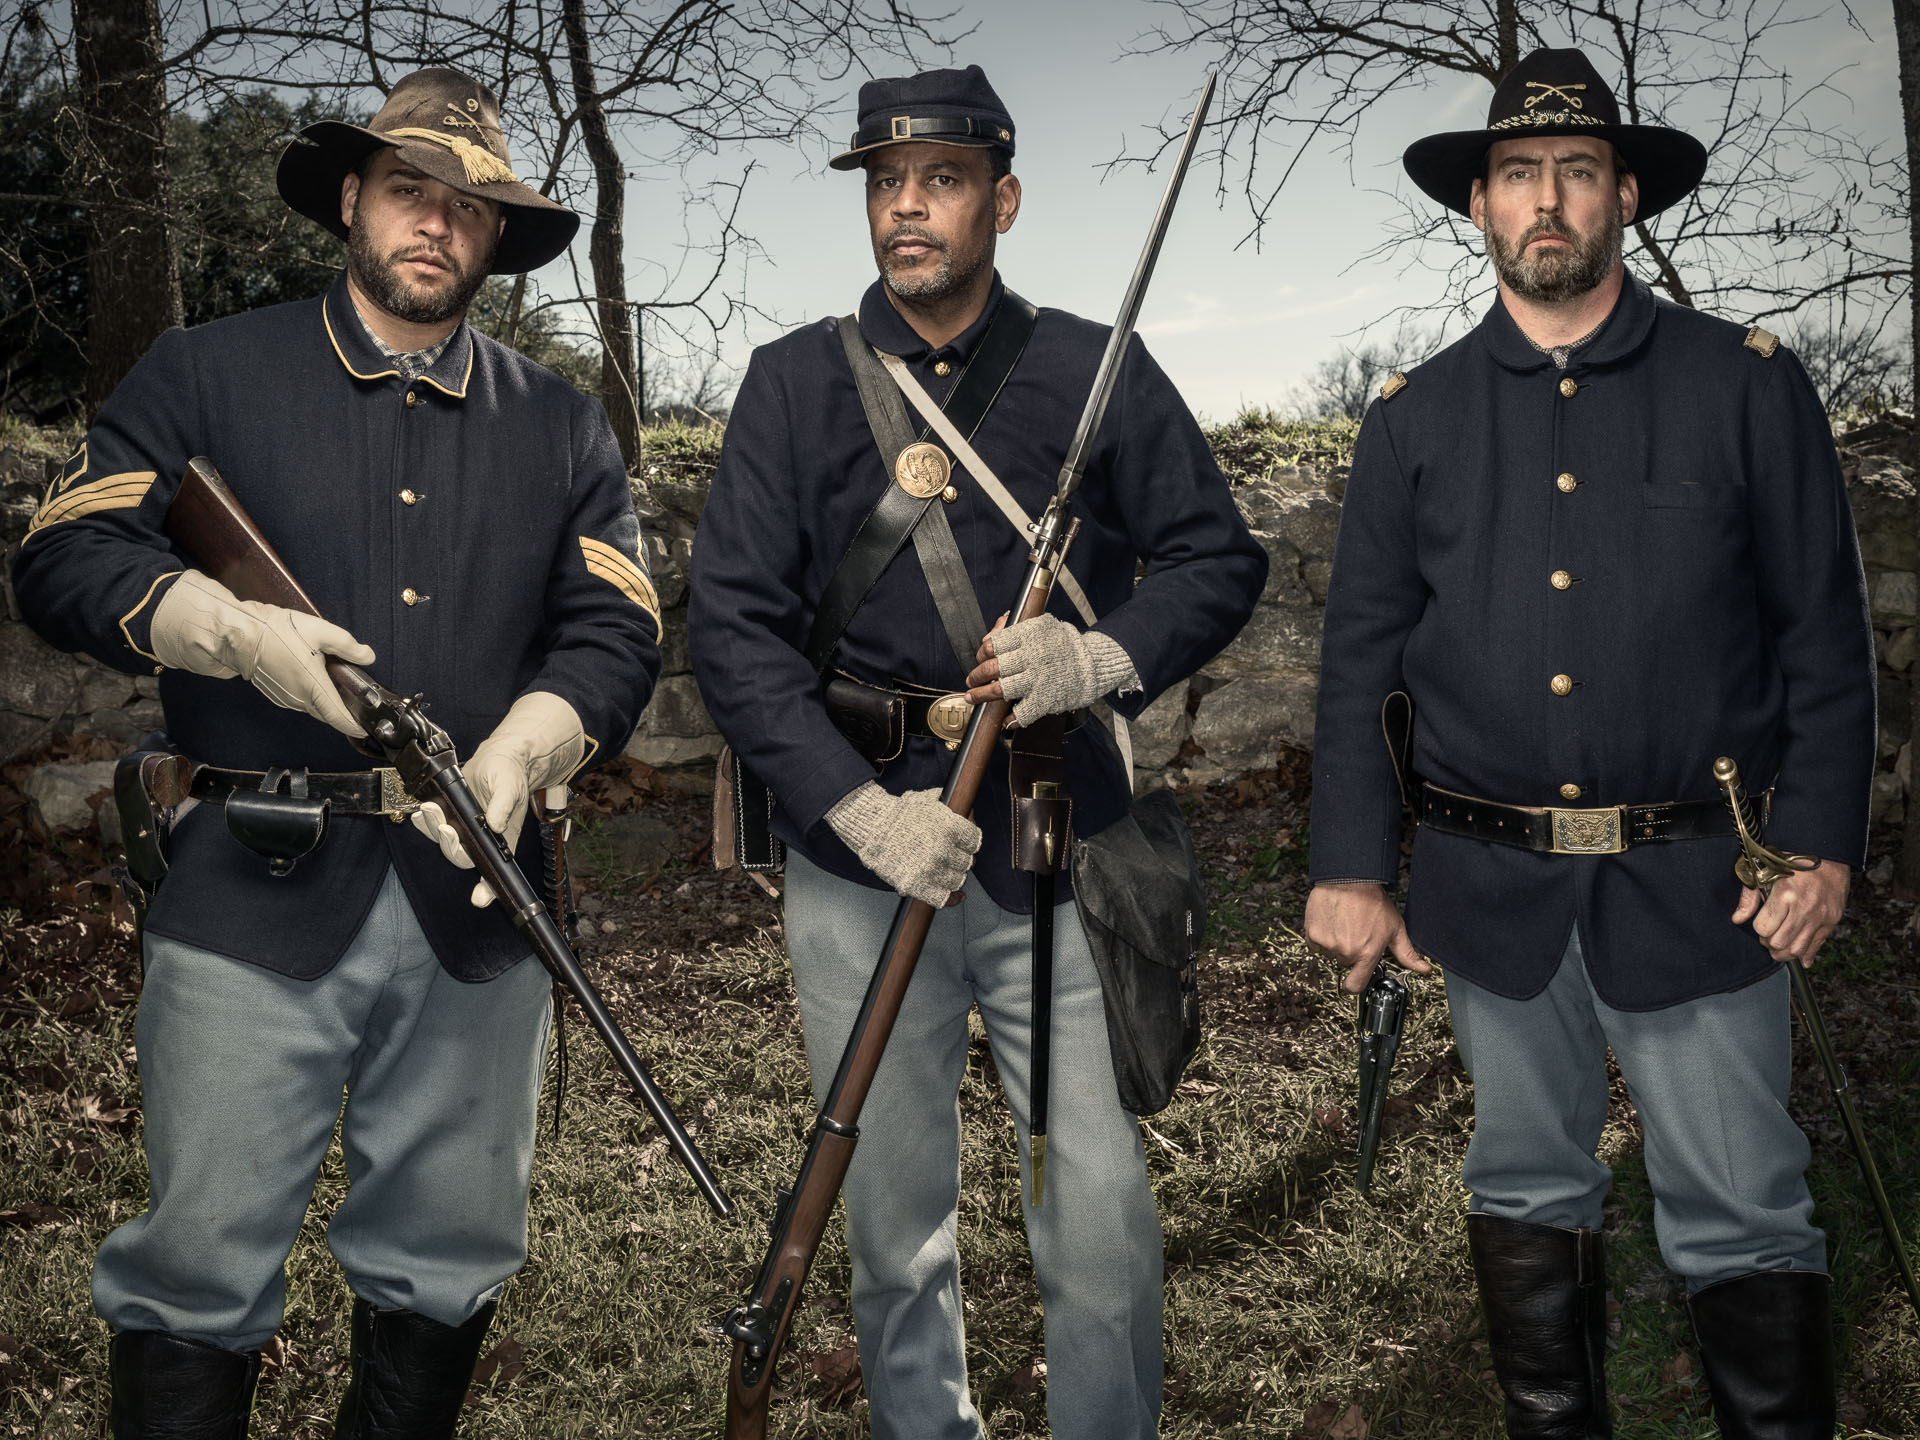 winters_tm_guns_buffalo_soldiers_4913